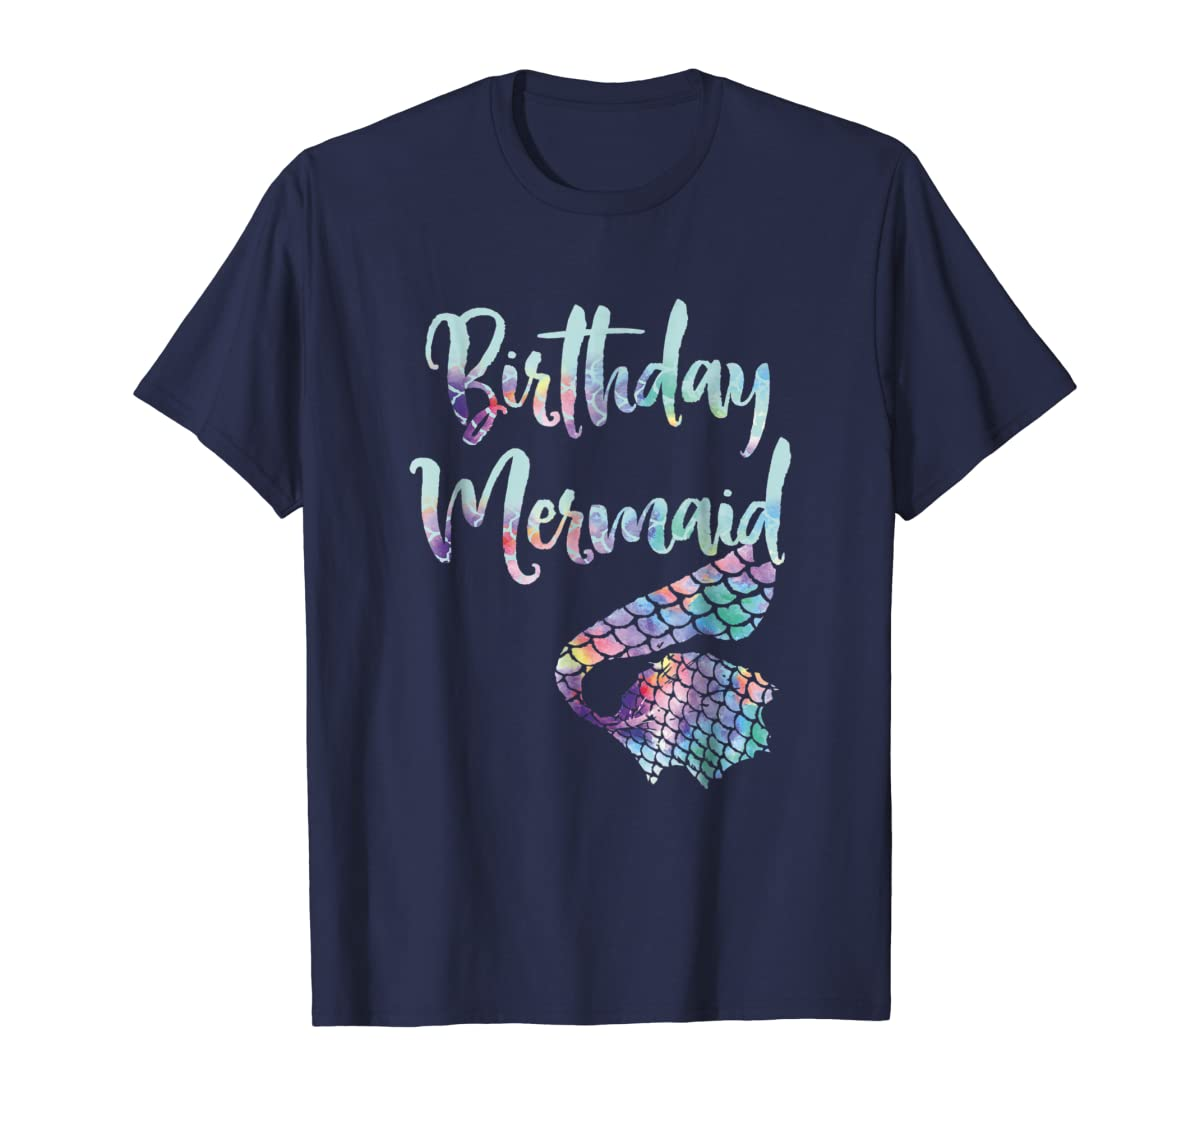 Birthday Mermaid Shirt-Men's T-Shirt-Navy